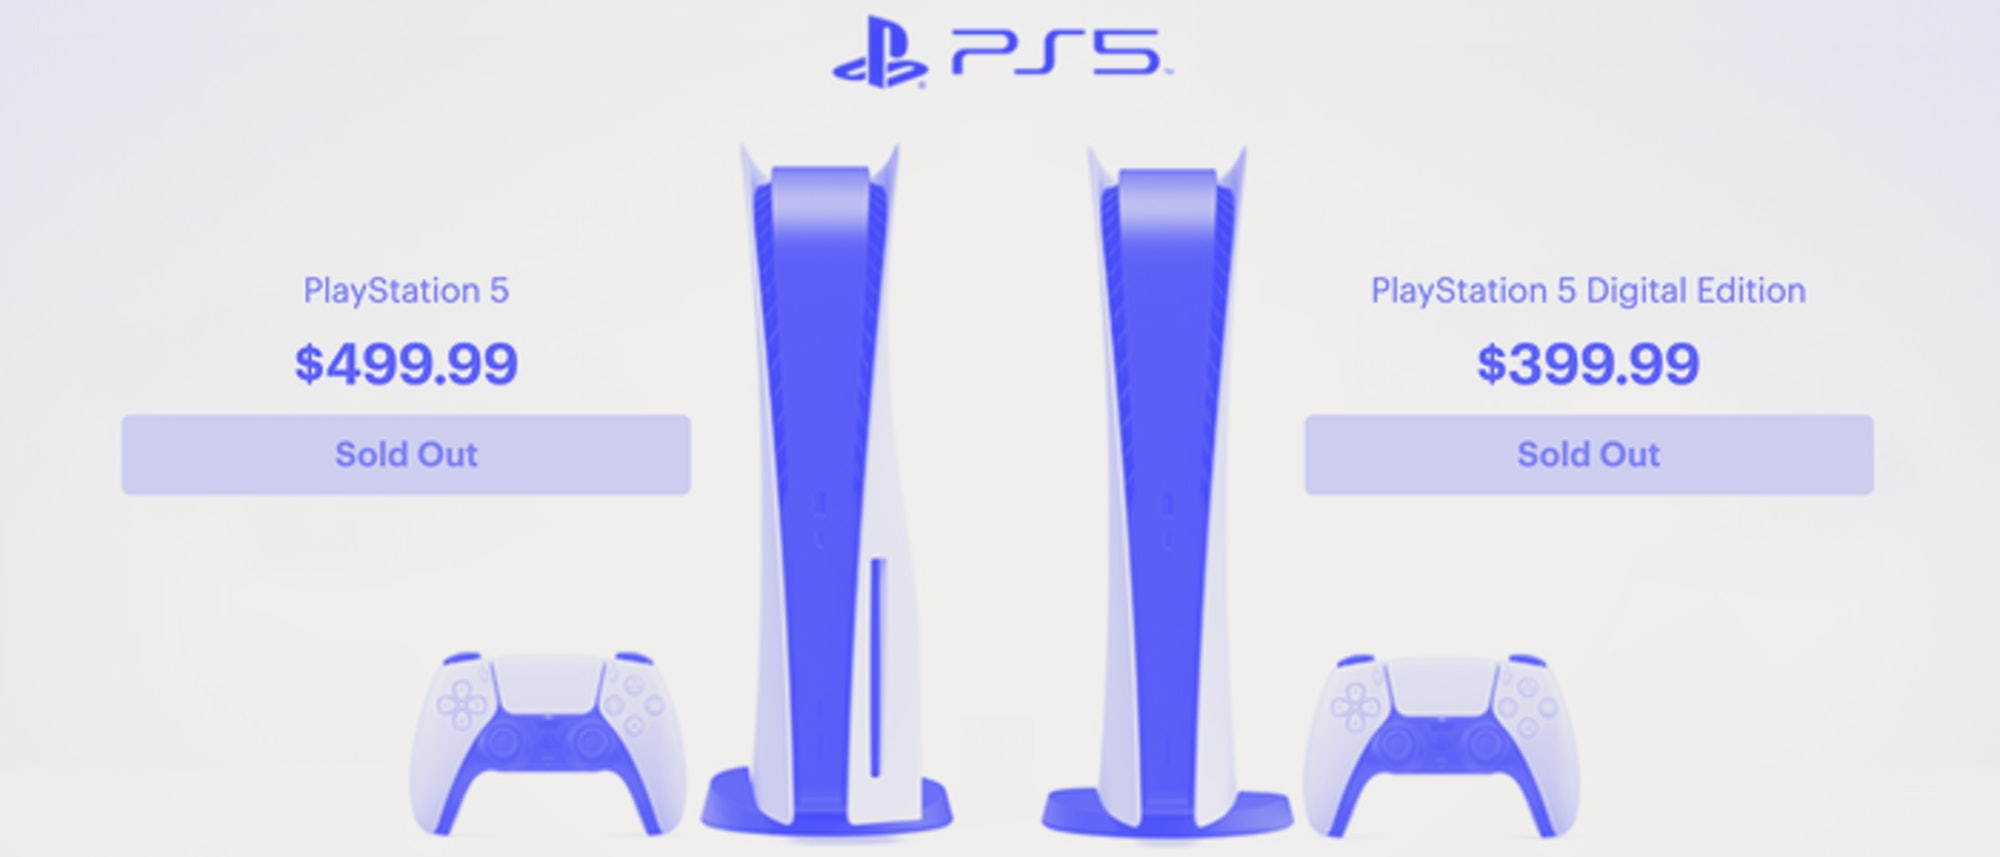 PlayStation 5 Sold Out Image